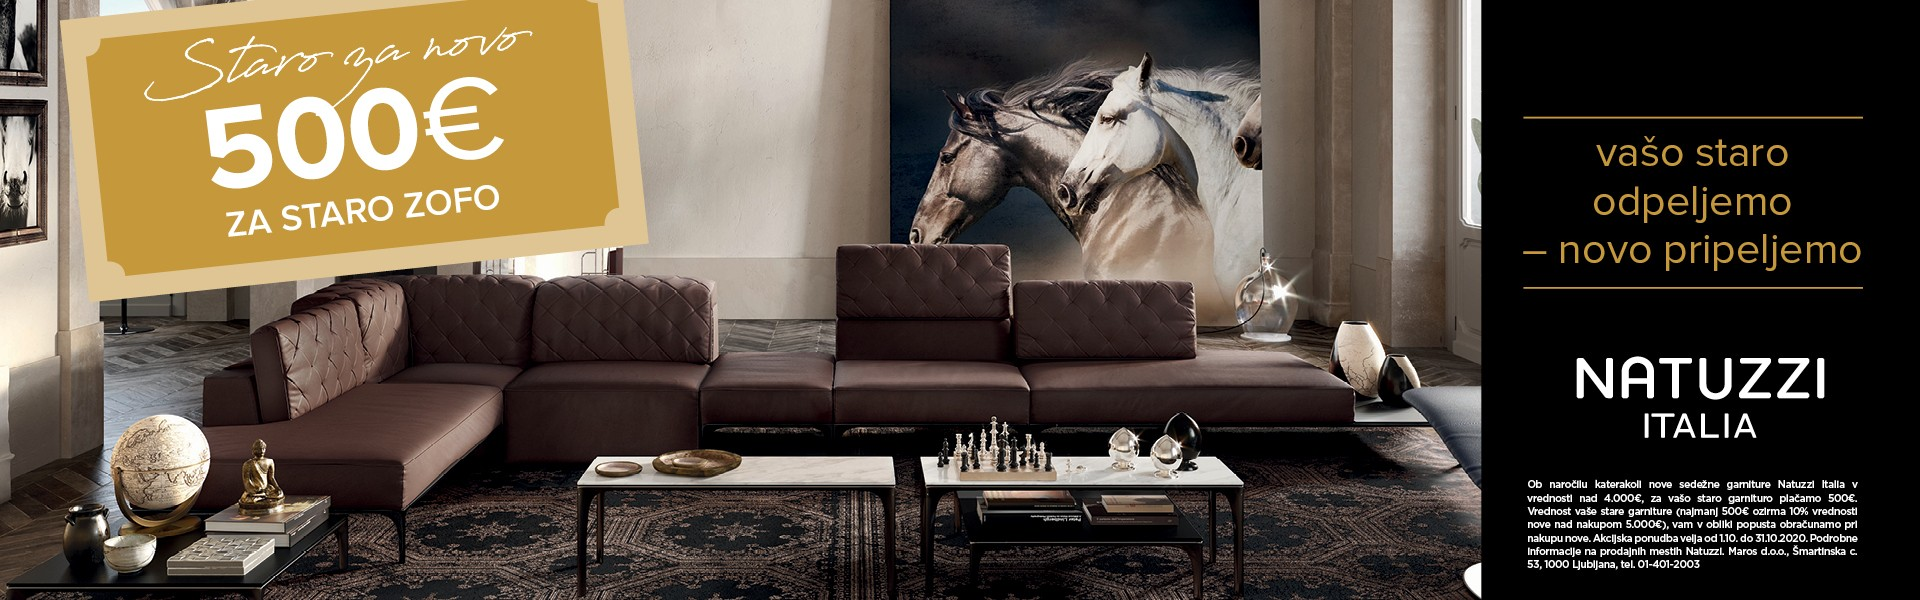 This hide can be sanded down (corrected) and embossed with a consistent graining pattern to be used on the outside back and sides of sofa for a slight cost. Natuzzi Slovenija